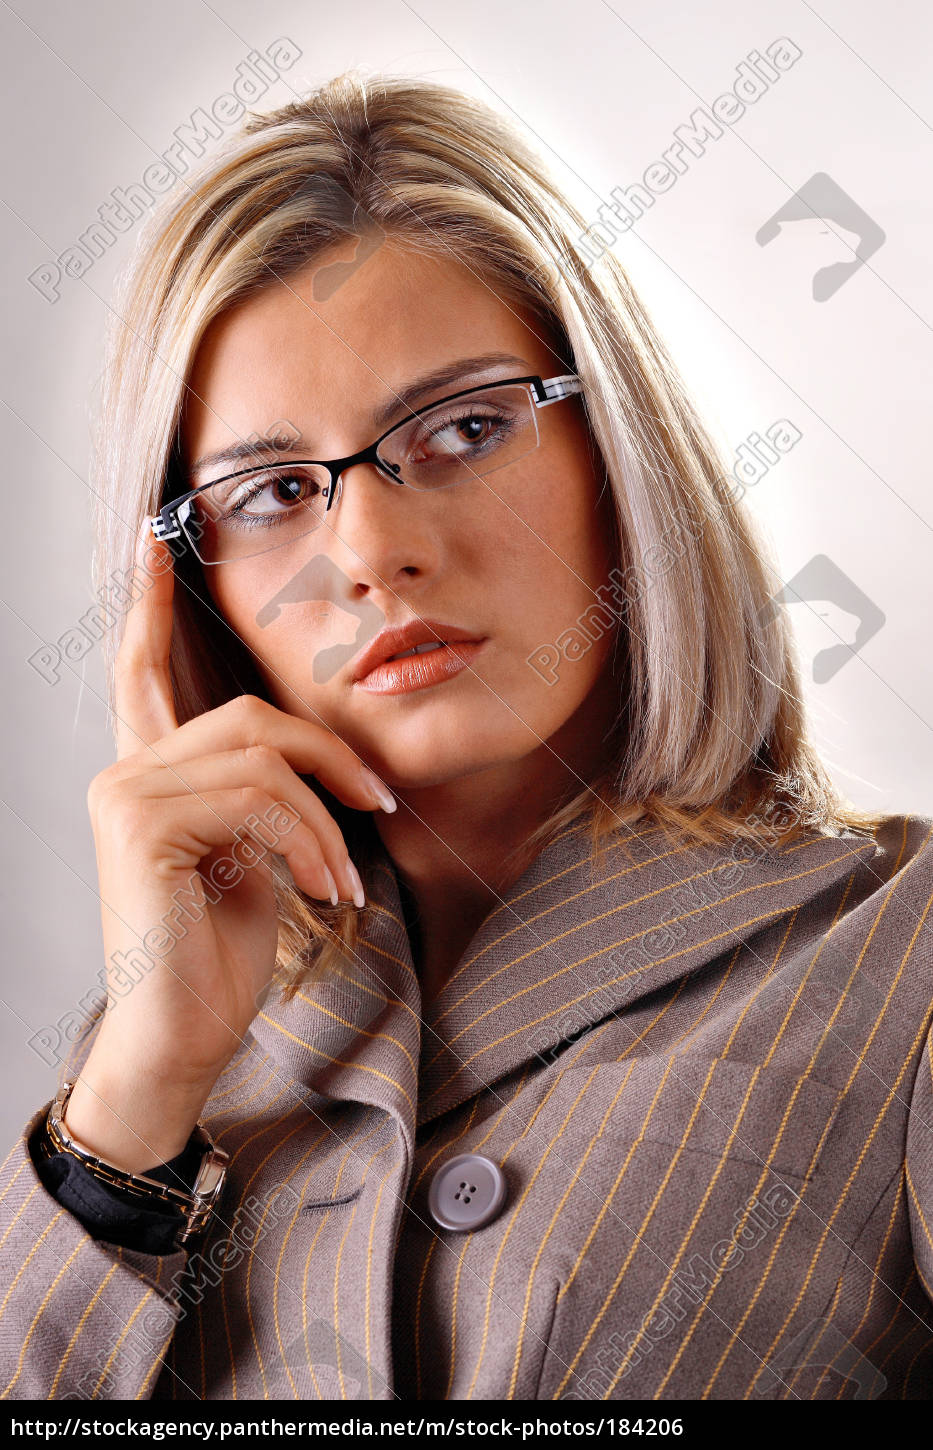 office, style - 184206